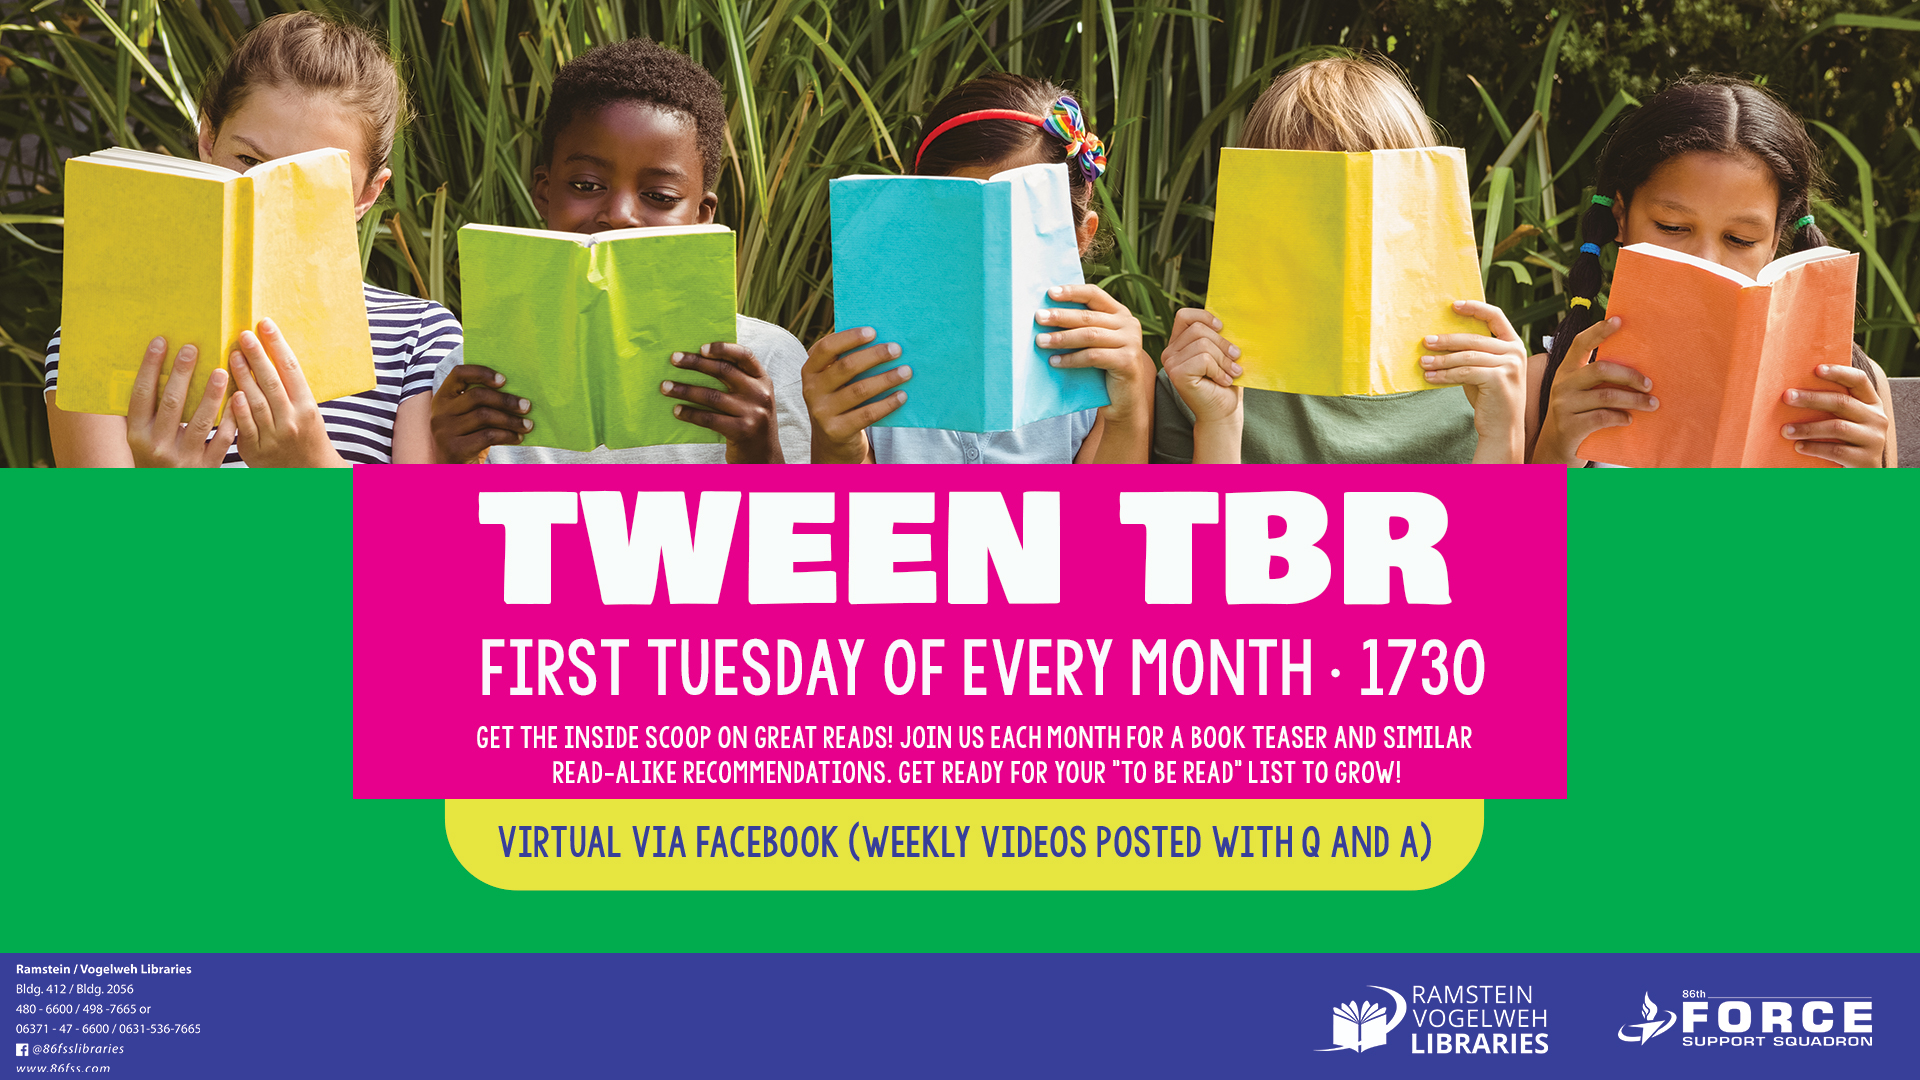 TV_RL_Tween-TBR